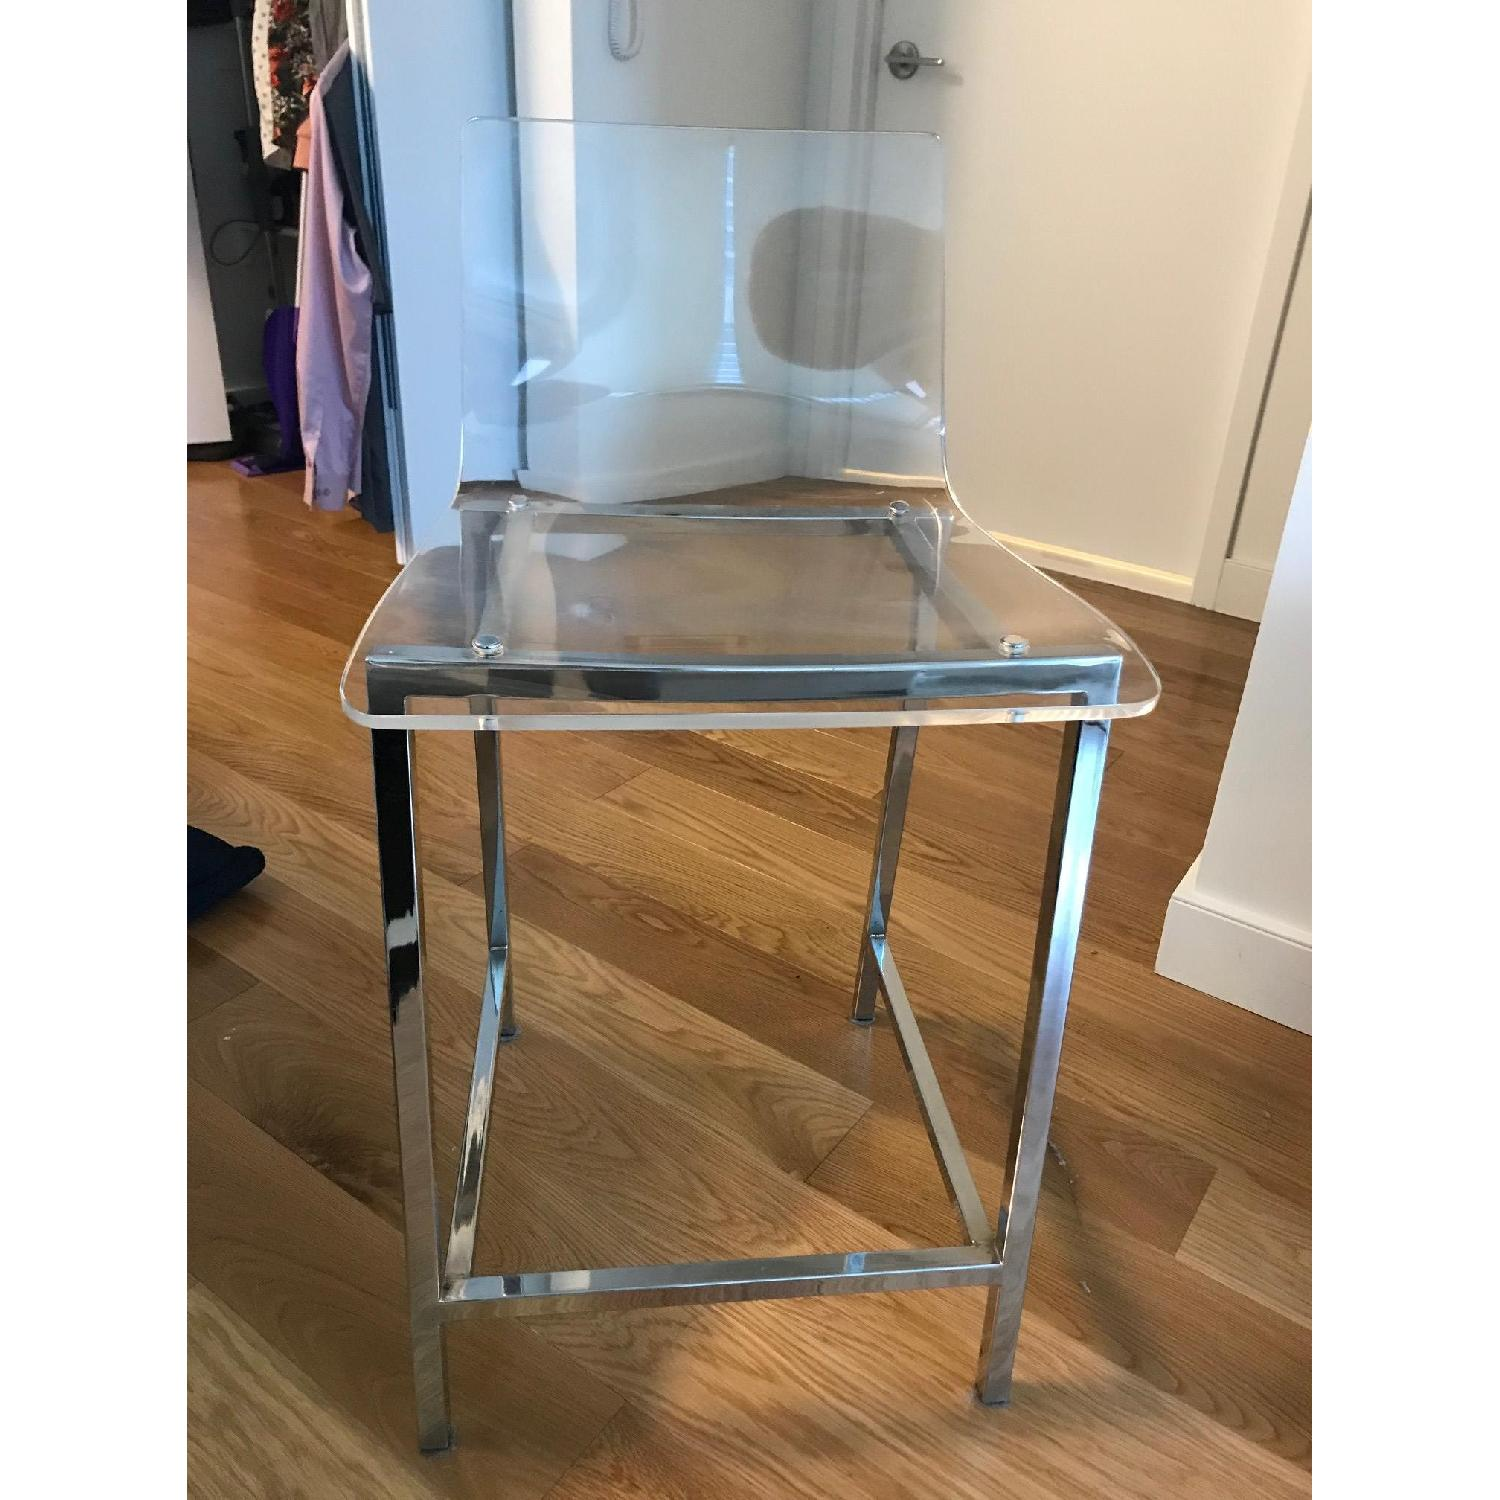 CB2 Clear Barstools in Nickel Finish - image-4